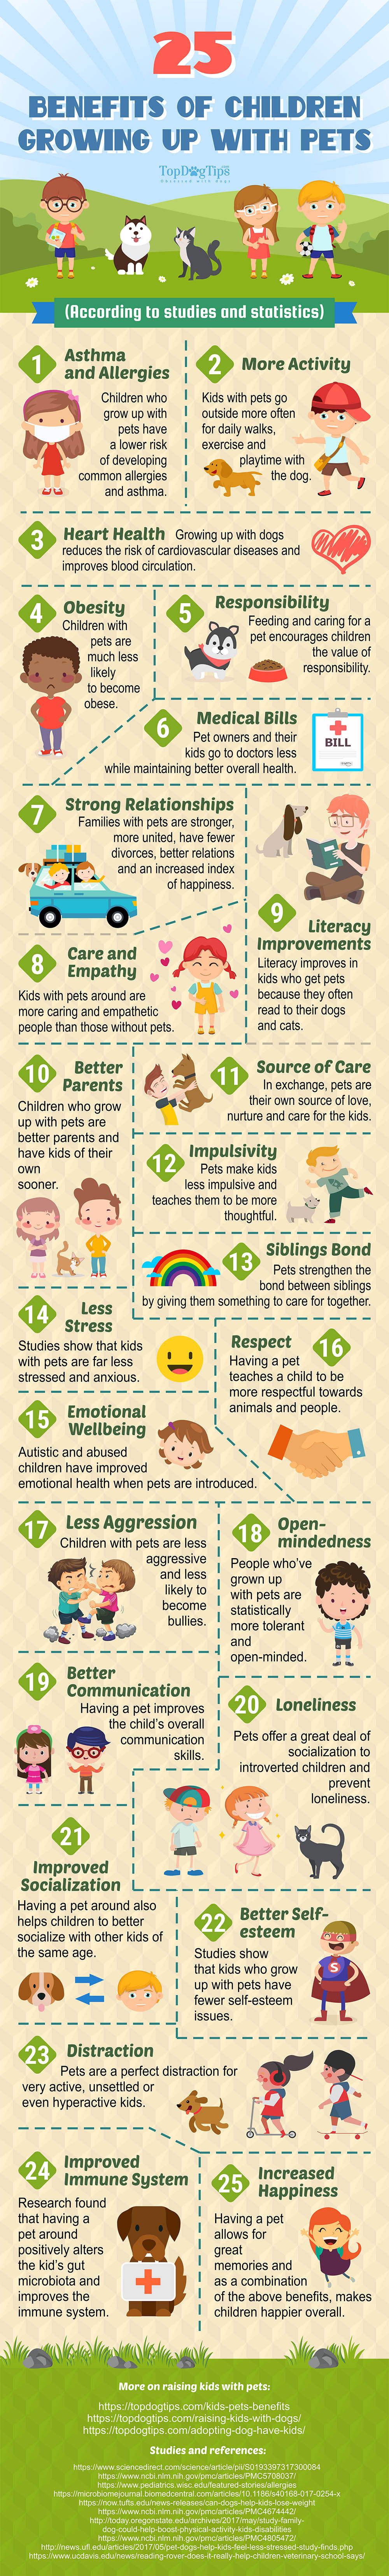 25 Benefits of Kids Growing Up with Pets [Infographic]